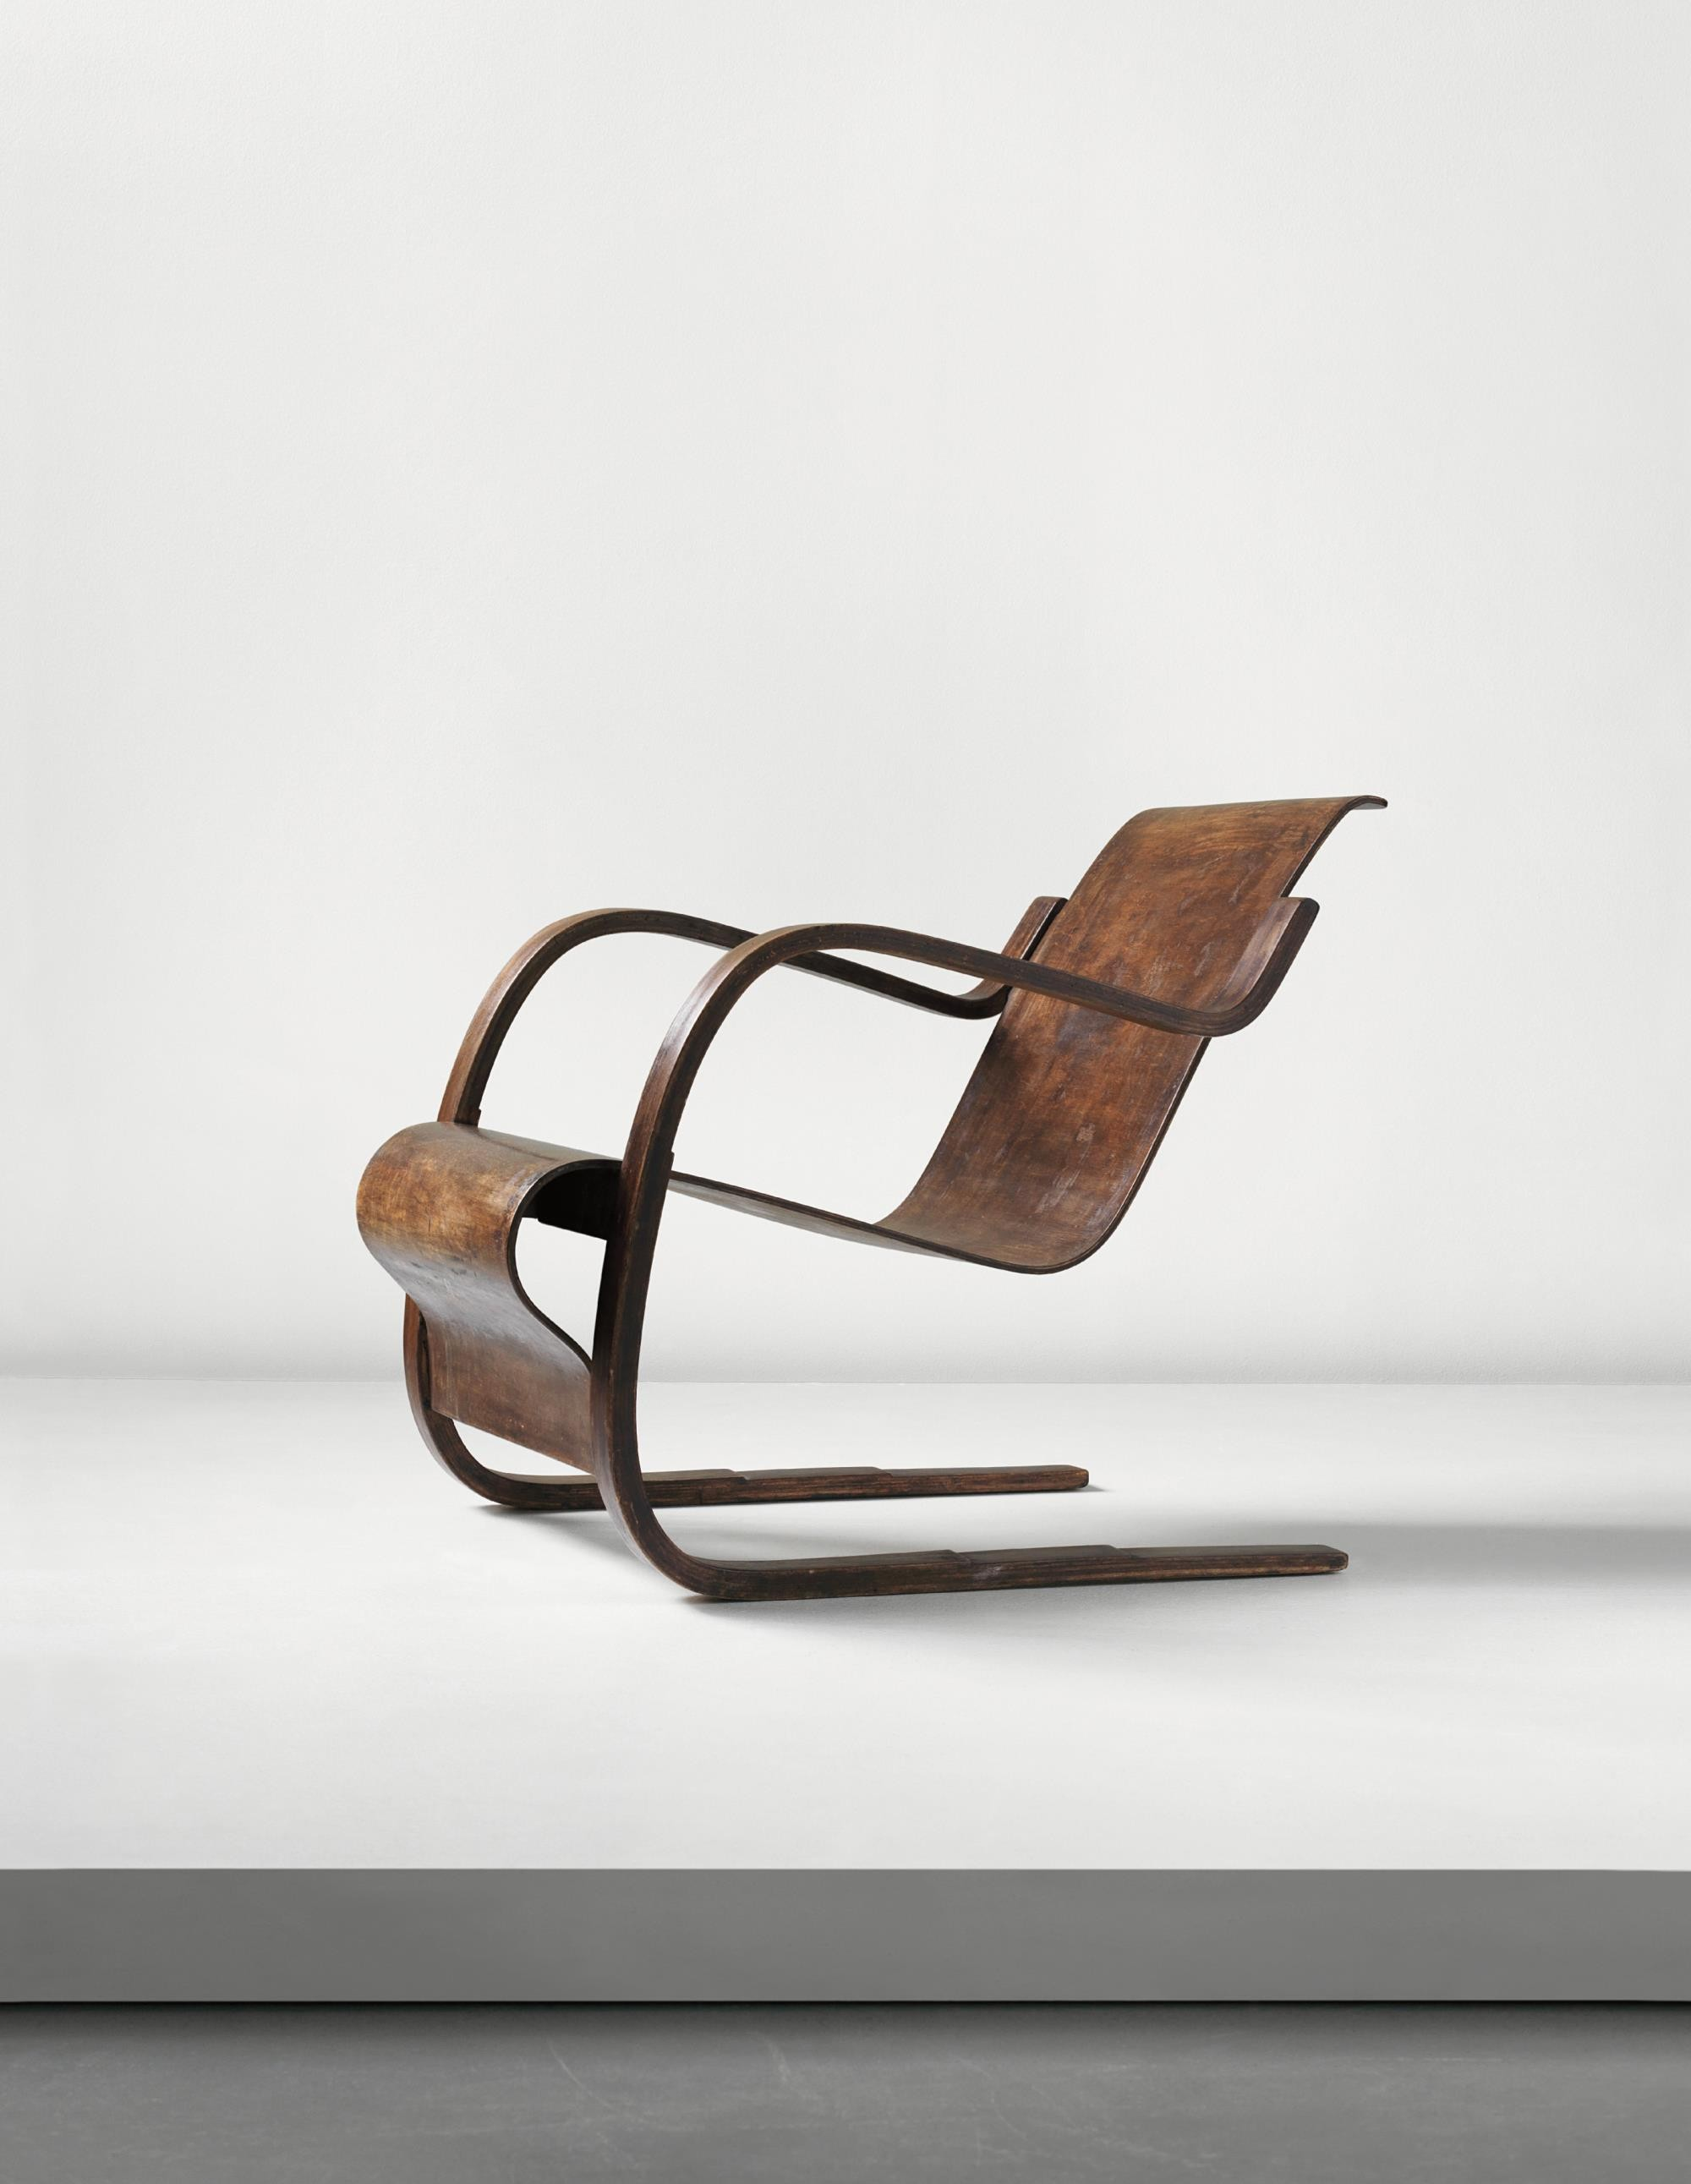 Gallery of Sold! 100 Design Relics from Niemeyer, Le Corbusier, FLW ...